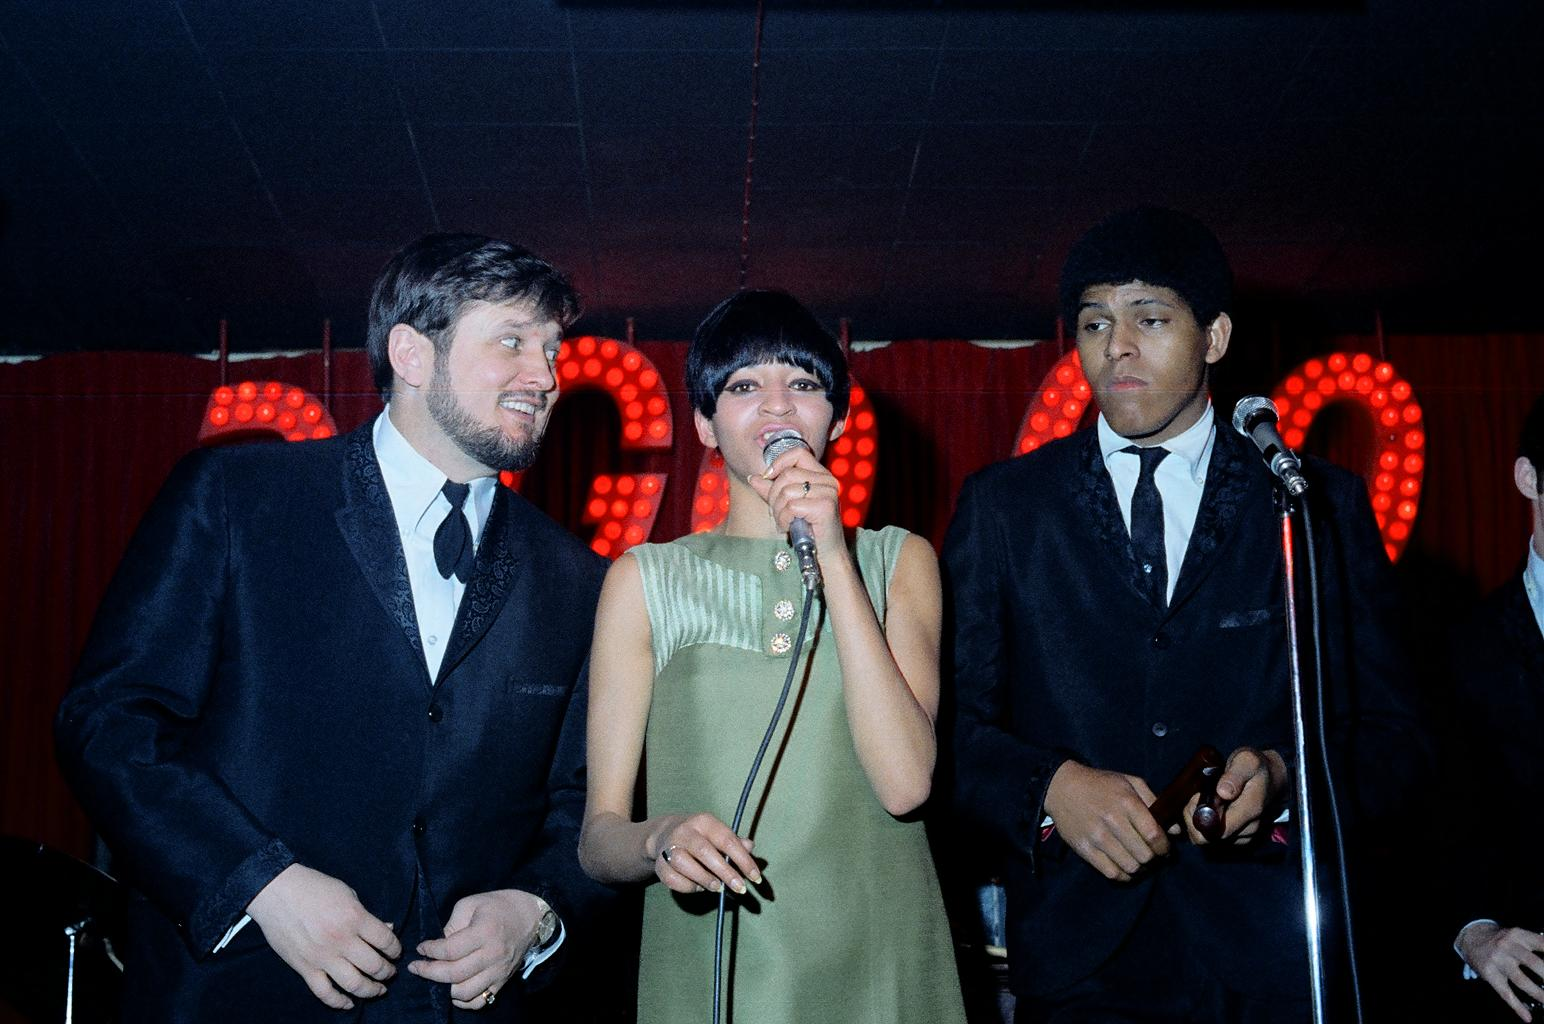 A colour photograph of three individuals, two men and a woman, performing on a stage. The men stand on either side of the woman and are dressed in black suits. The woman in the middle has a short haircut and wears a light green dress. She sings into a microphone.